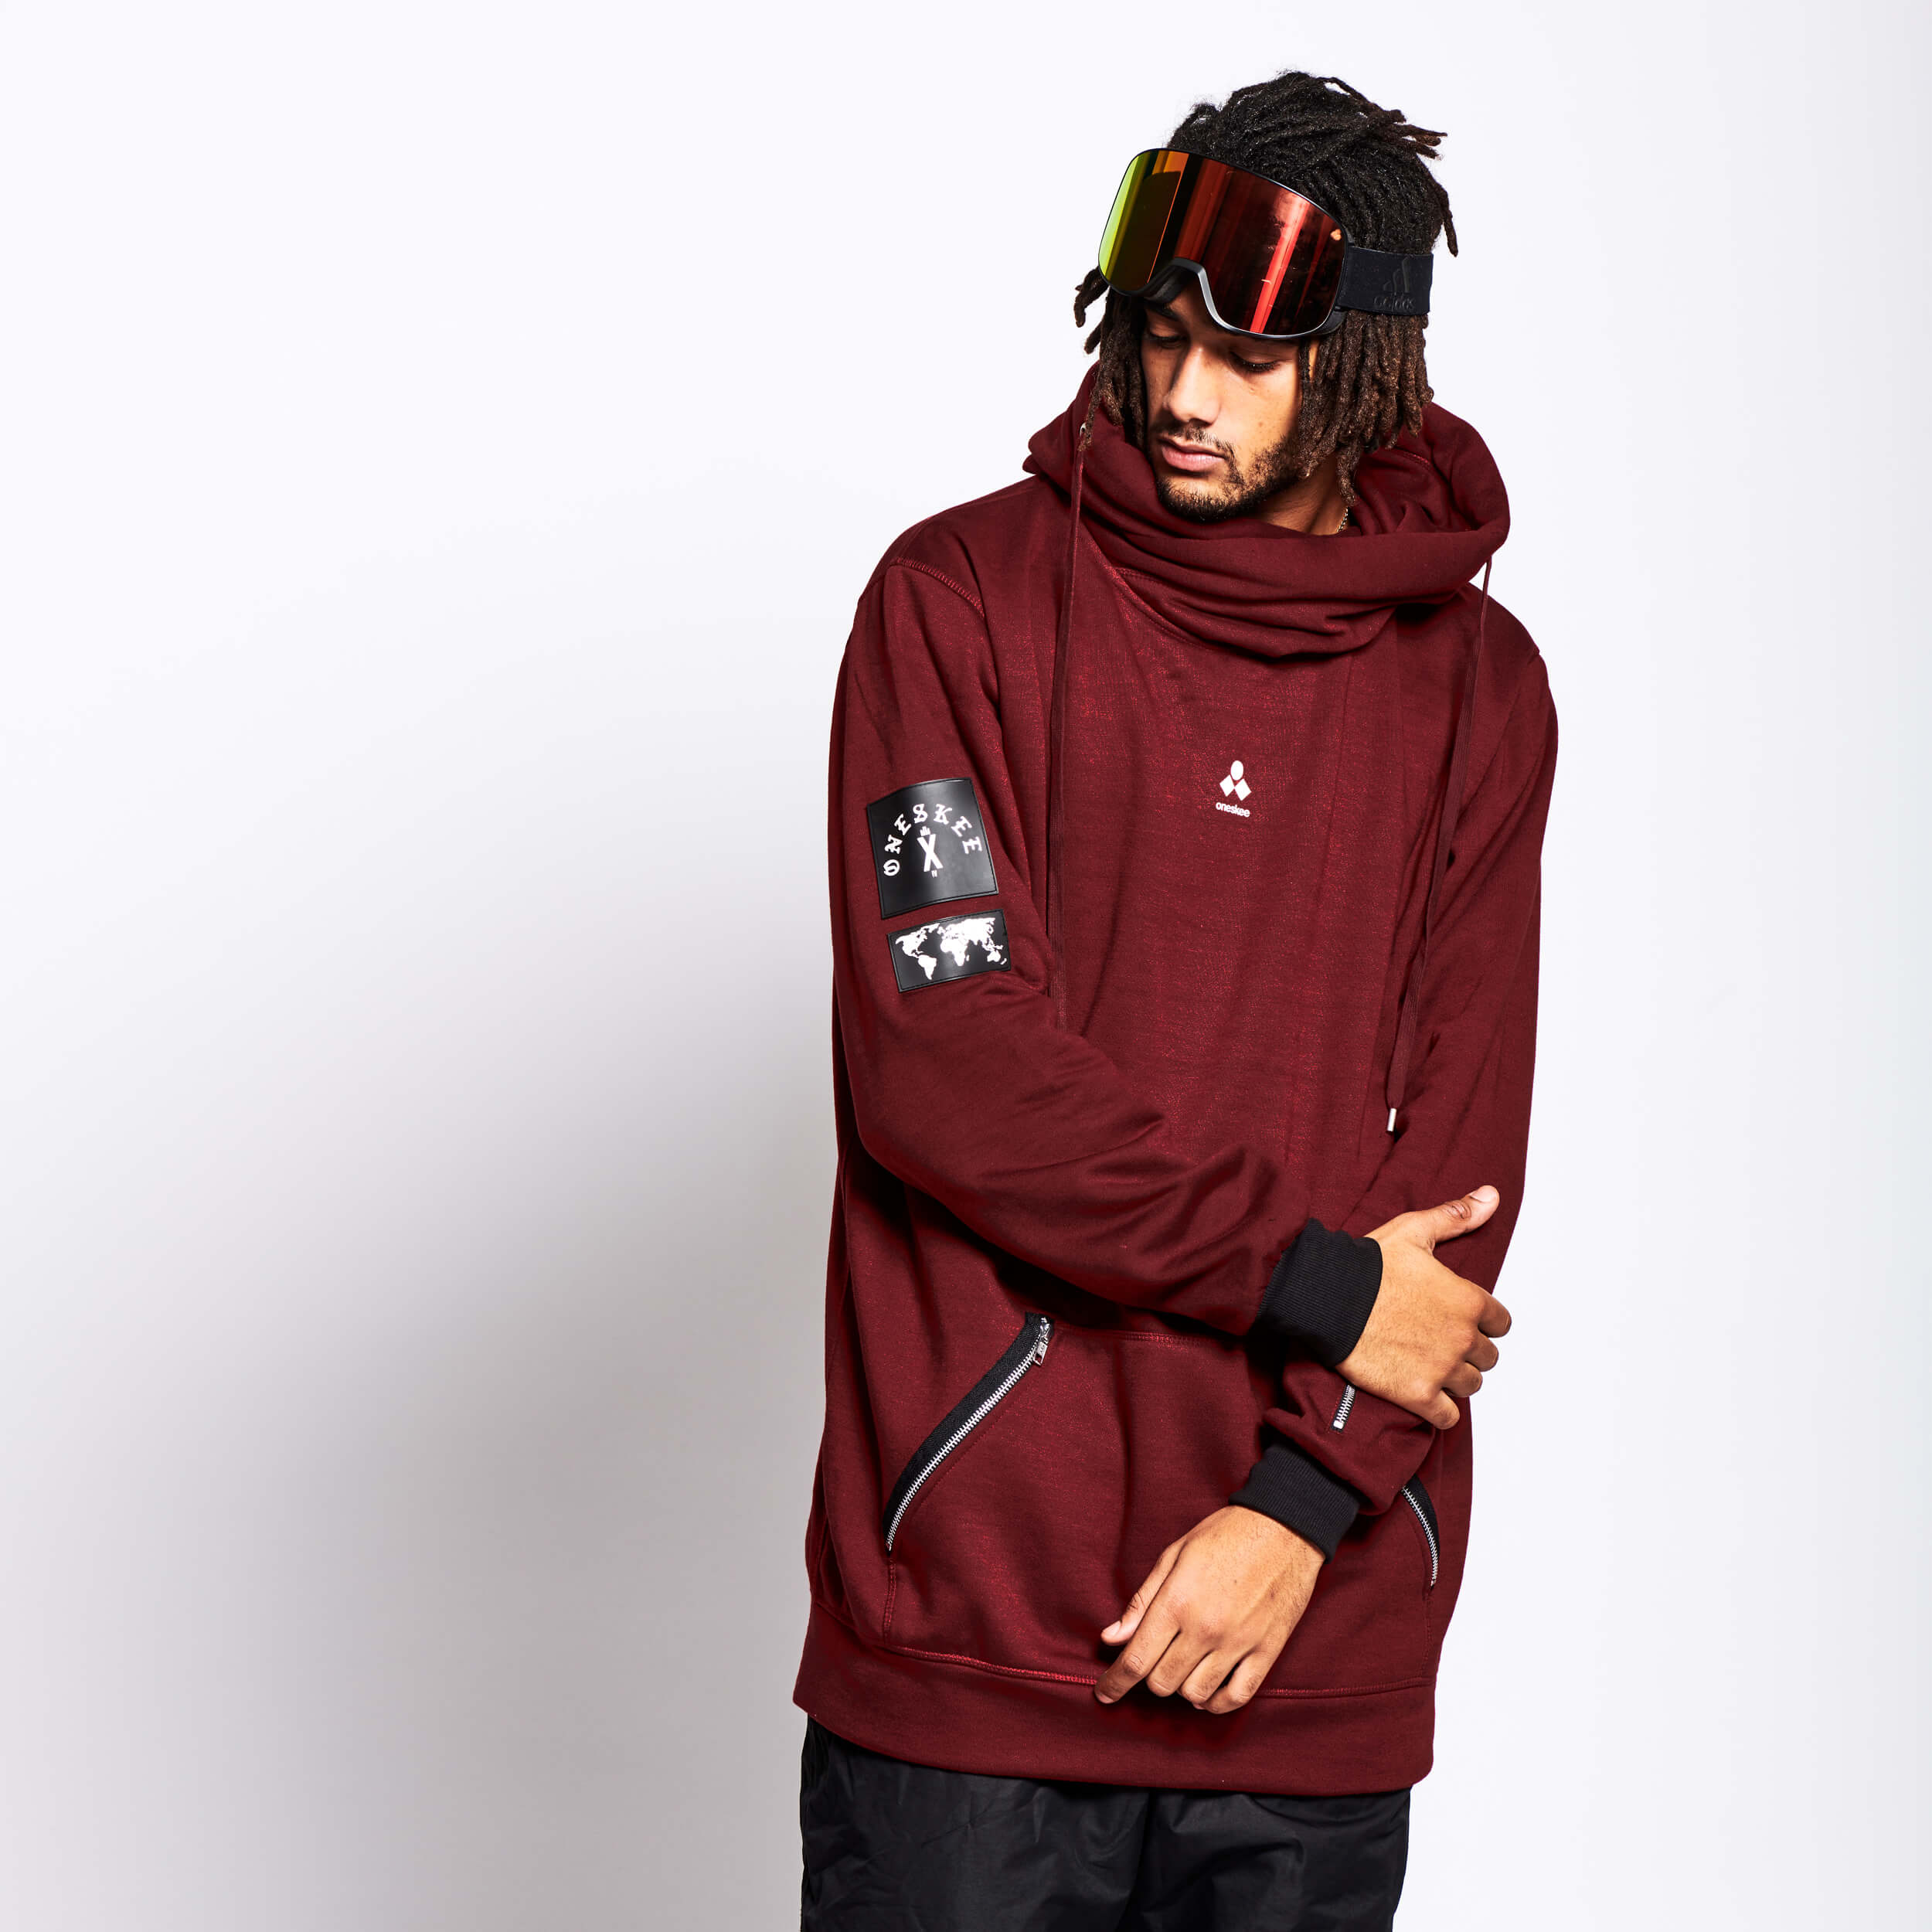 Men's Technical X-Neck Hoodie  - Burgundy image 1